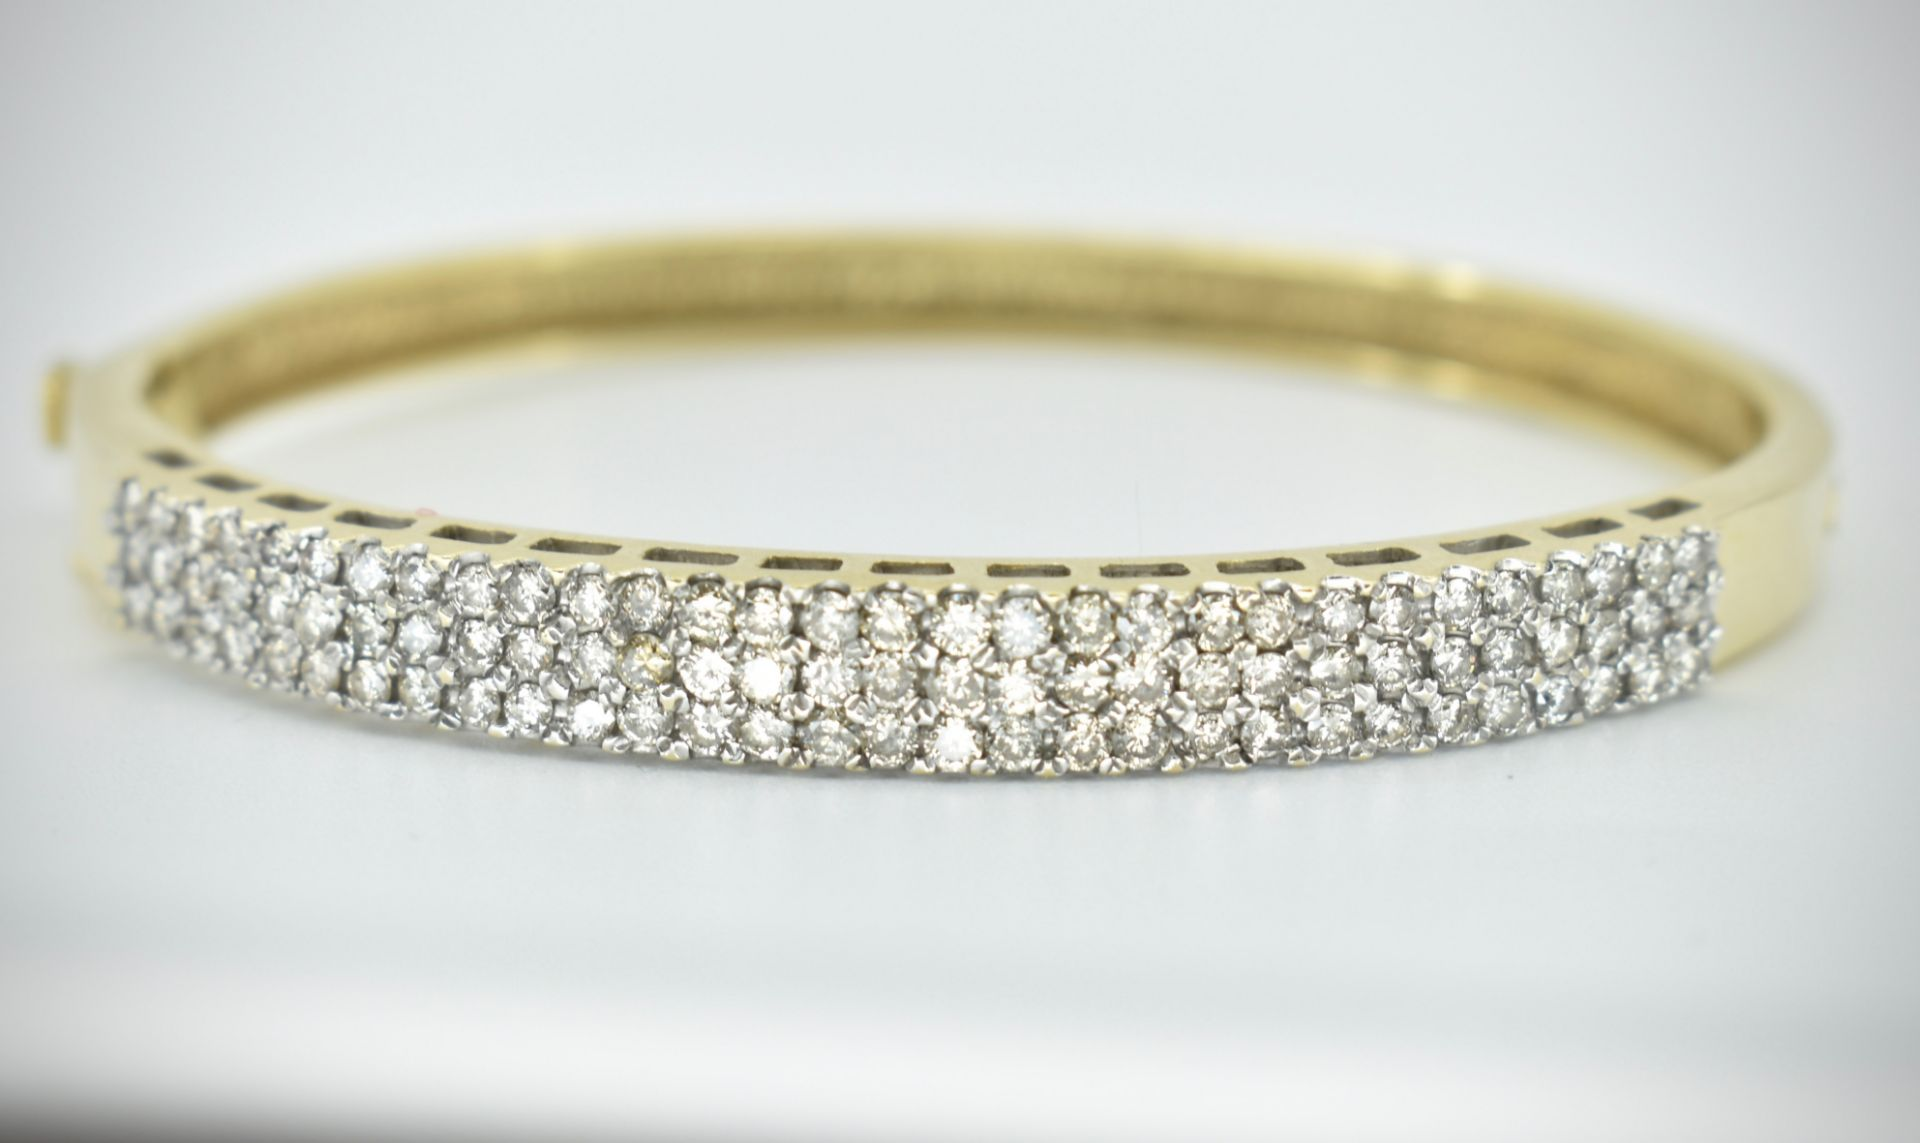 A 14ct Gold & Diamond Pave Fronted Bracelet - Bangle - Image 7 of 7